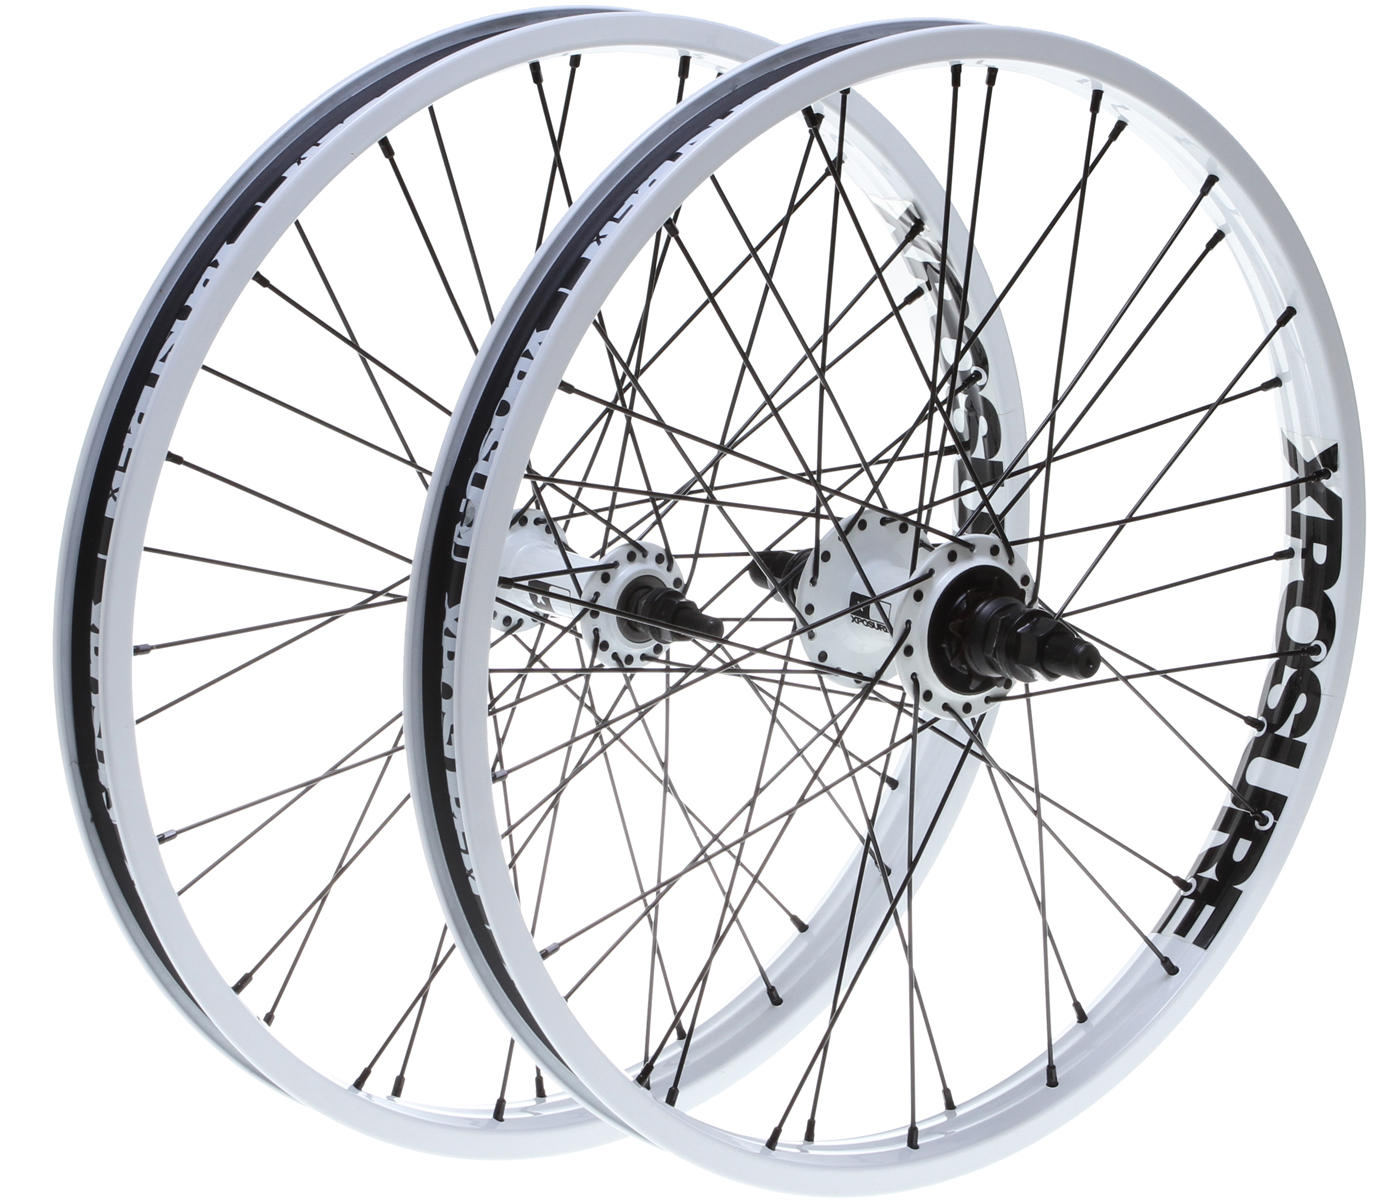 "BMX Key Features of the Xposure Mid Set Wheels 20"": MID WHEEL REAR Material: Steel rim / Aluminium hub Size: 14mm axle Colours: Matt Black / Matt White / Purple / Green / Red / Ti Description: Looseball 9t Xposure cassette hub with 14mm axle, steel spokes, Xposure double wall, straight profile rim Liquor rim. Weight: 1198g MID WHEEL FRONT Material: Steel rim / Aluminium hub Size: 3/8in axle Colours: Matt Black / Matt White / Purple / Green / Red / Ti Description: Looseball Xposure front hub with 3/8in axle, steel spokes, Xposure double wall, aero profile rim Liquor rim. Weight: 1013g - $169.95"